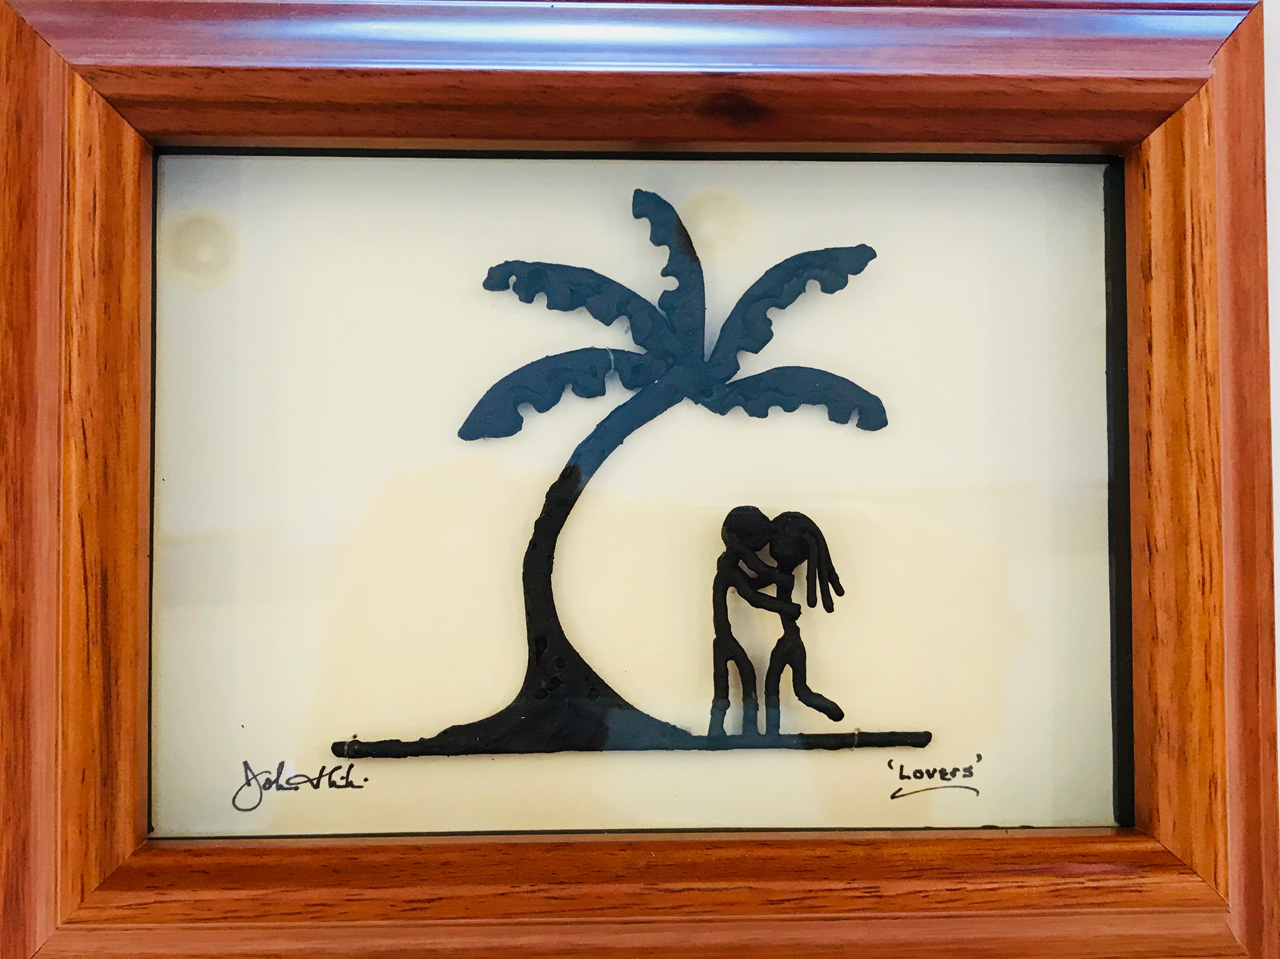 Framed metal sculpture of two people under a palm tree entitled Lovers by John Ilnicki